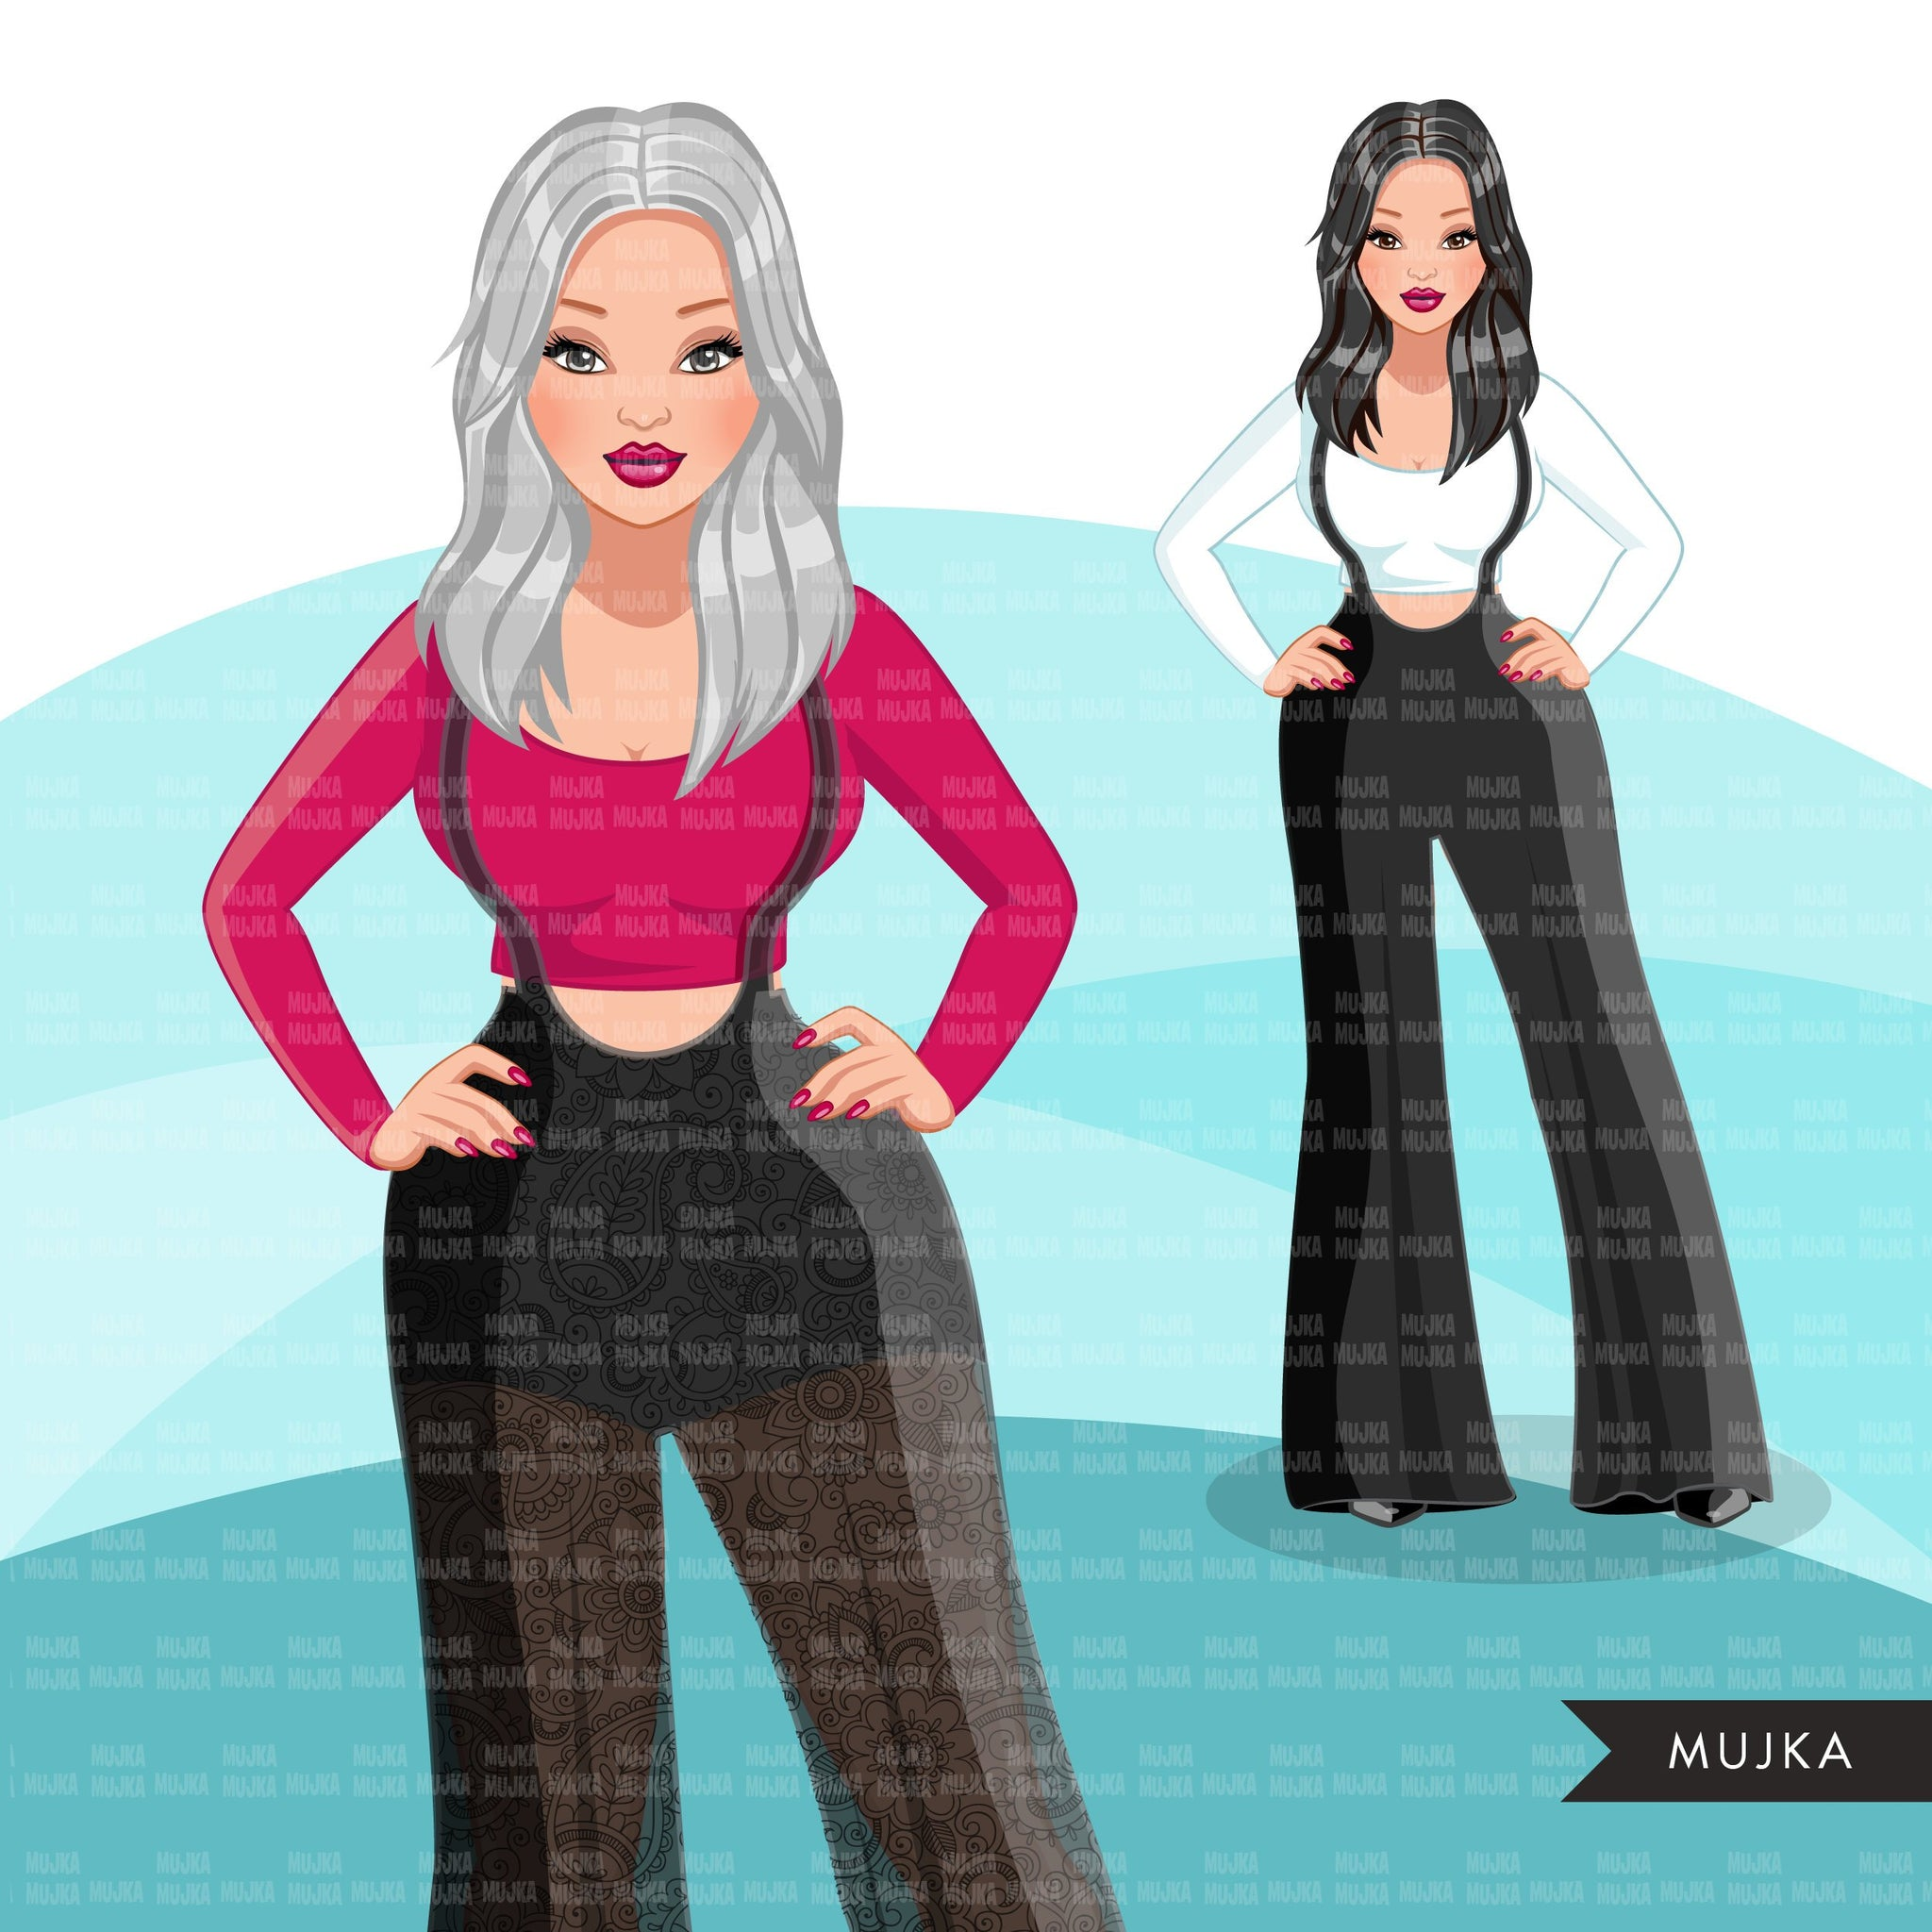 Fashion Graphics, Caucasian Woman jumpsuit, long hair, Sublimation designs for Cricut & Cameo, commercial use PNG clipart